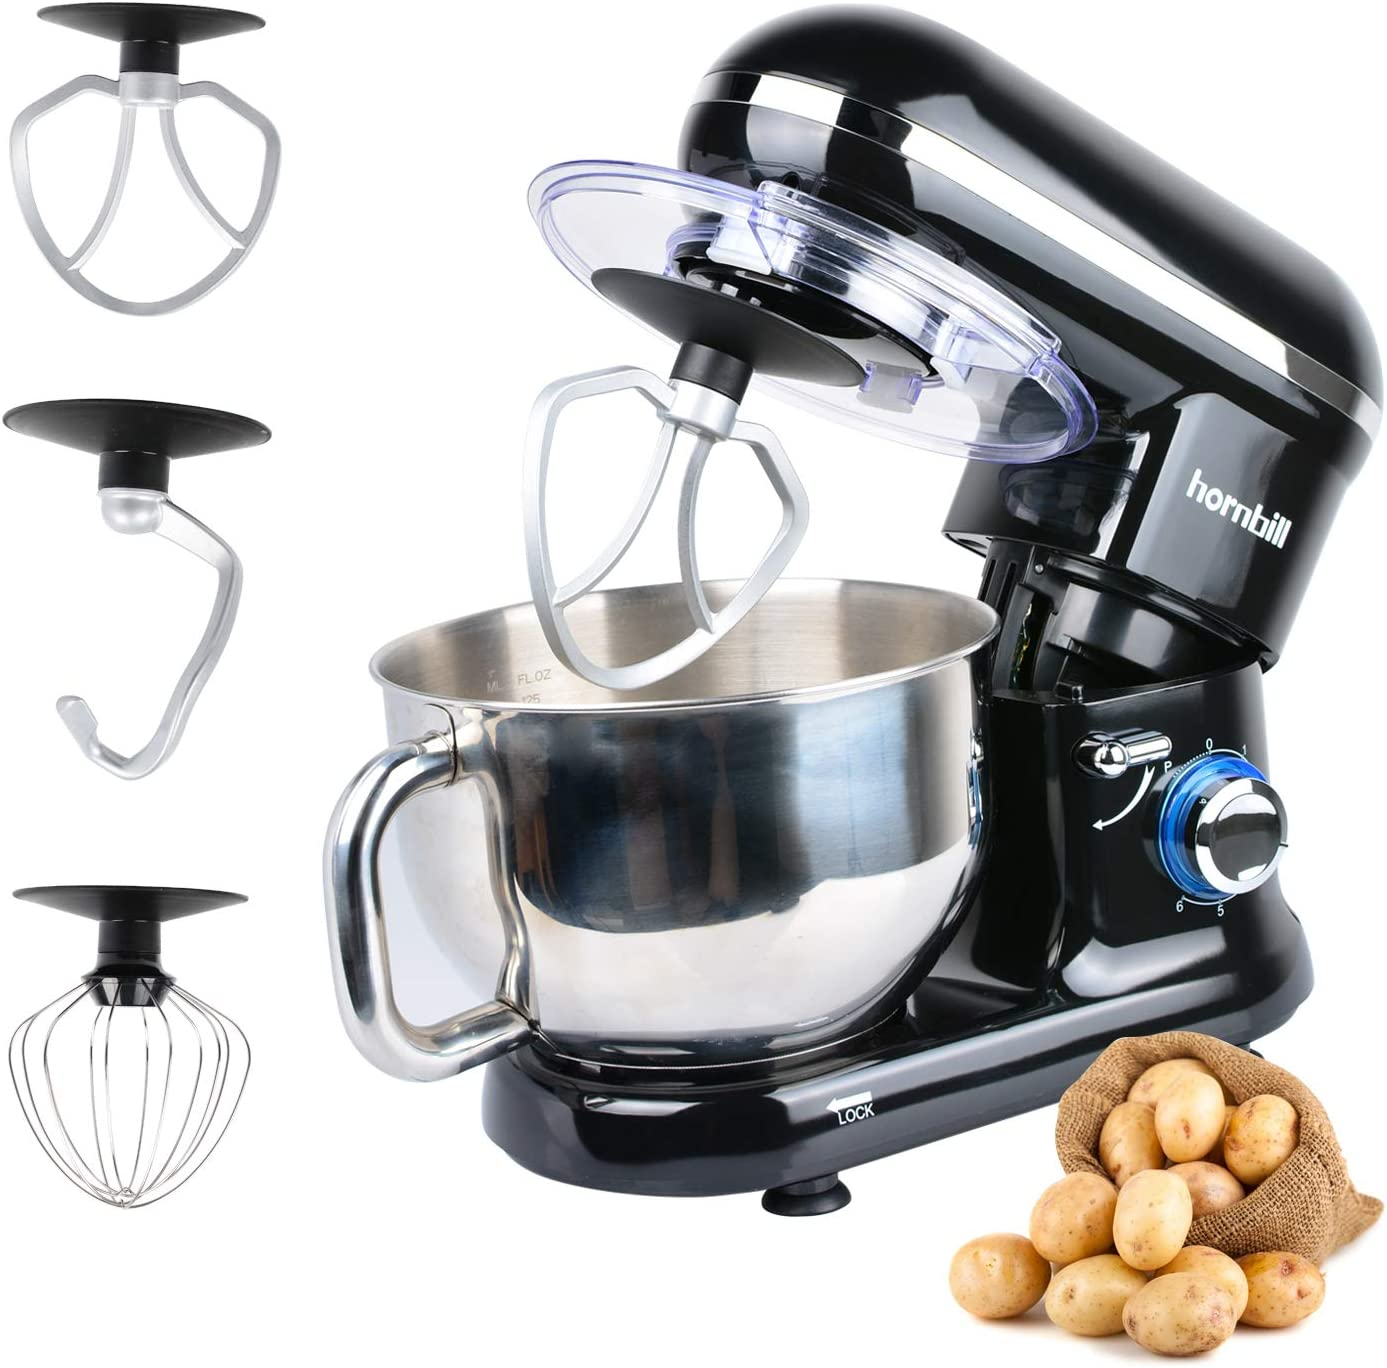 Hornbill Tilt-head Stand Mixer, Electric Mixer 600W 6-Speed 5-Quart Stainless Steel Bowl Professional Kitchen Mixer With Dough Hook, Whisk, Beater Black